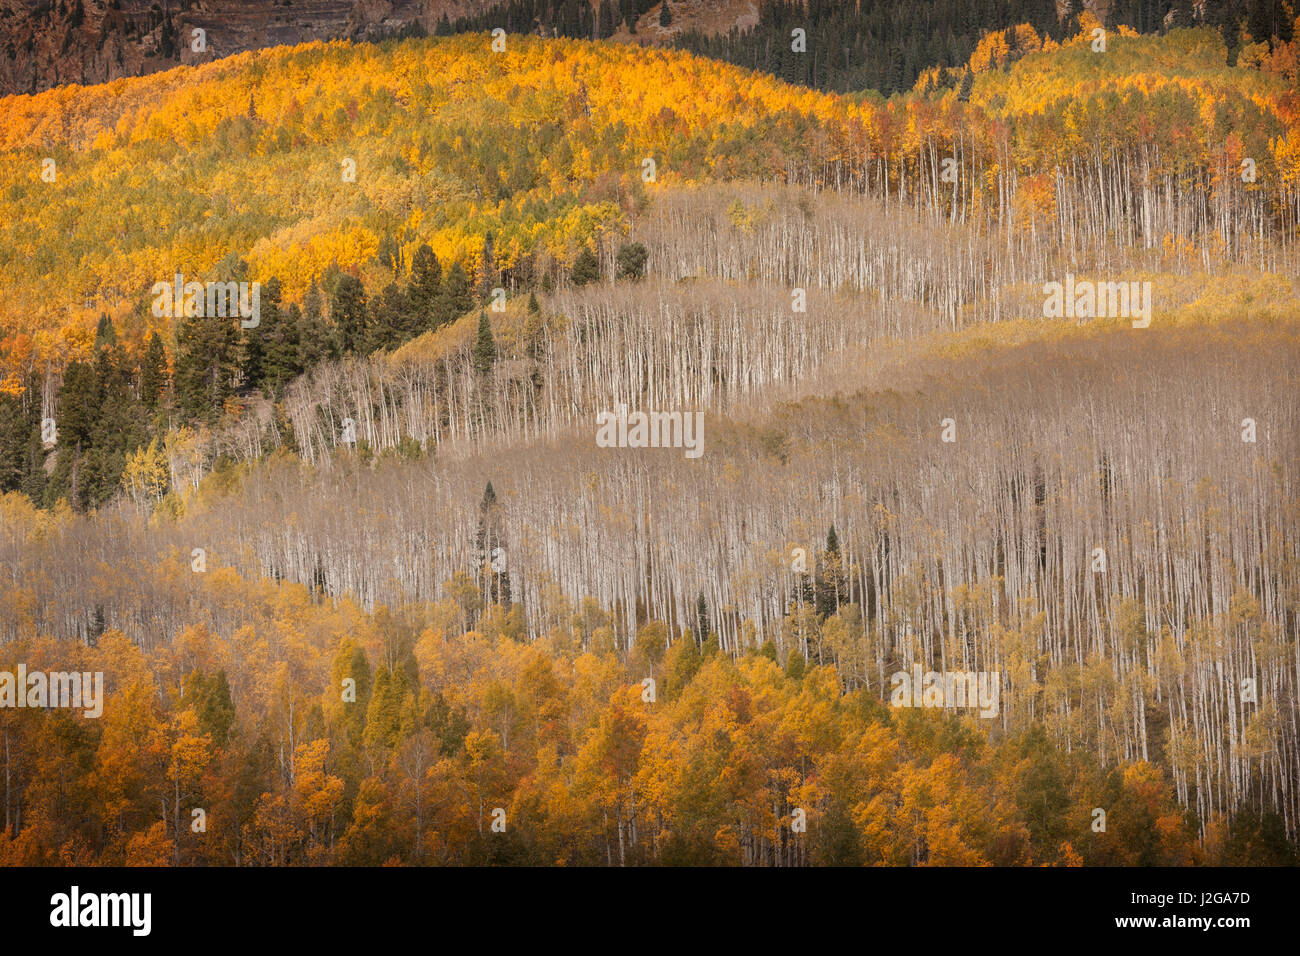 USA, Colorado, Gunnison National Forest. Fall display of aspen trees. Credit as: Don Grall / Jaynes Gallery / DanitaDelimont.com - Stock Image